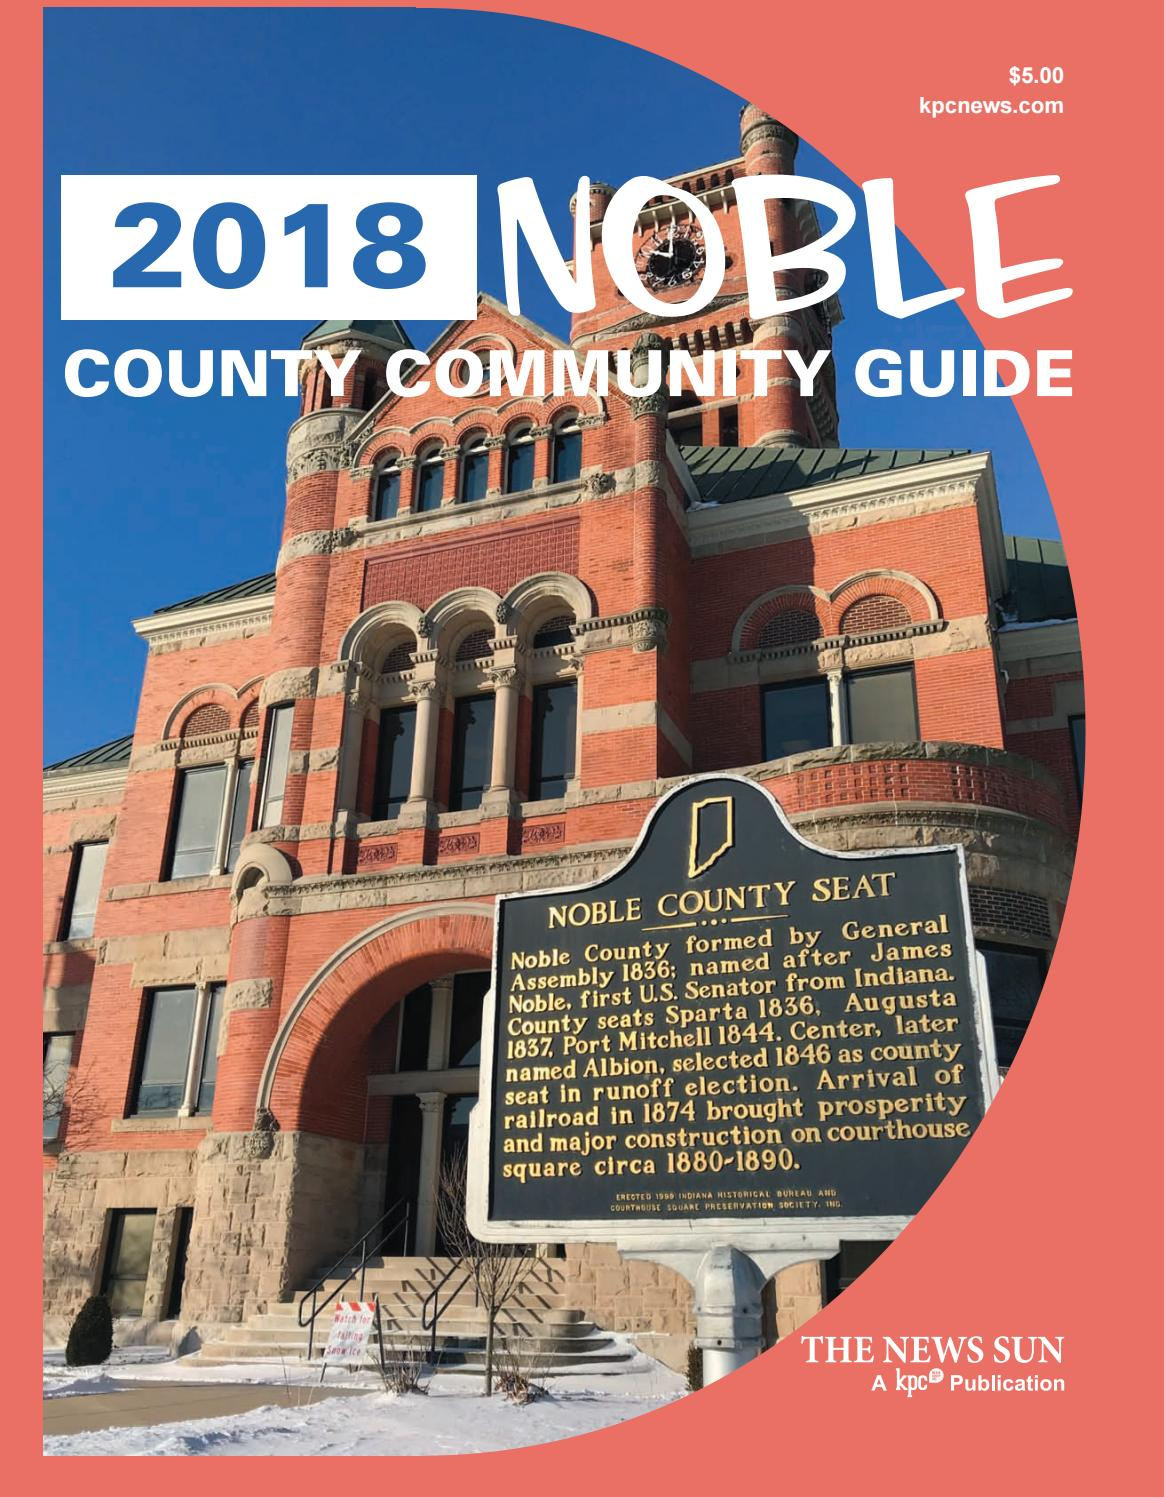 secor home decor catalog 2016 by brian secor issuu.htm 2018 noble county community guide by kpc media group issuu  2018 noble county community guide by